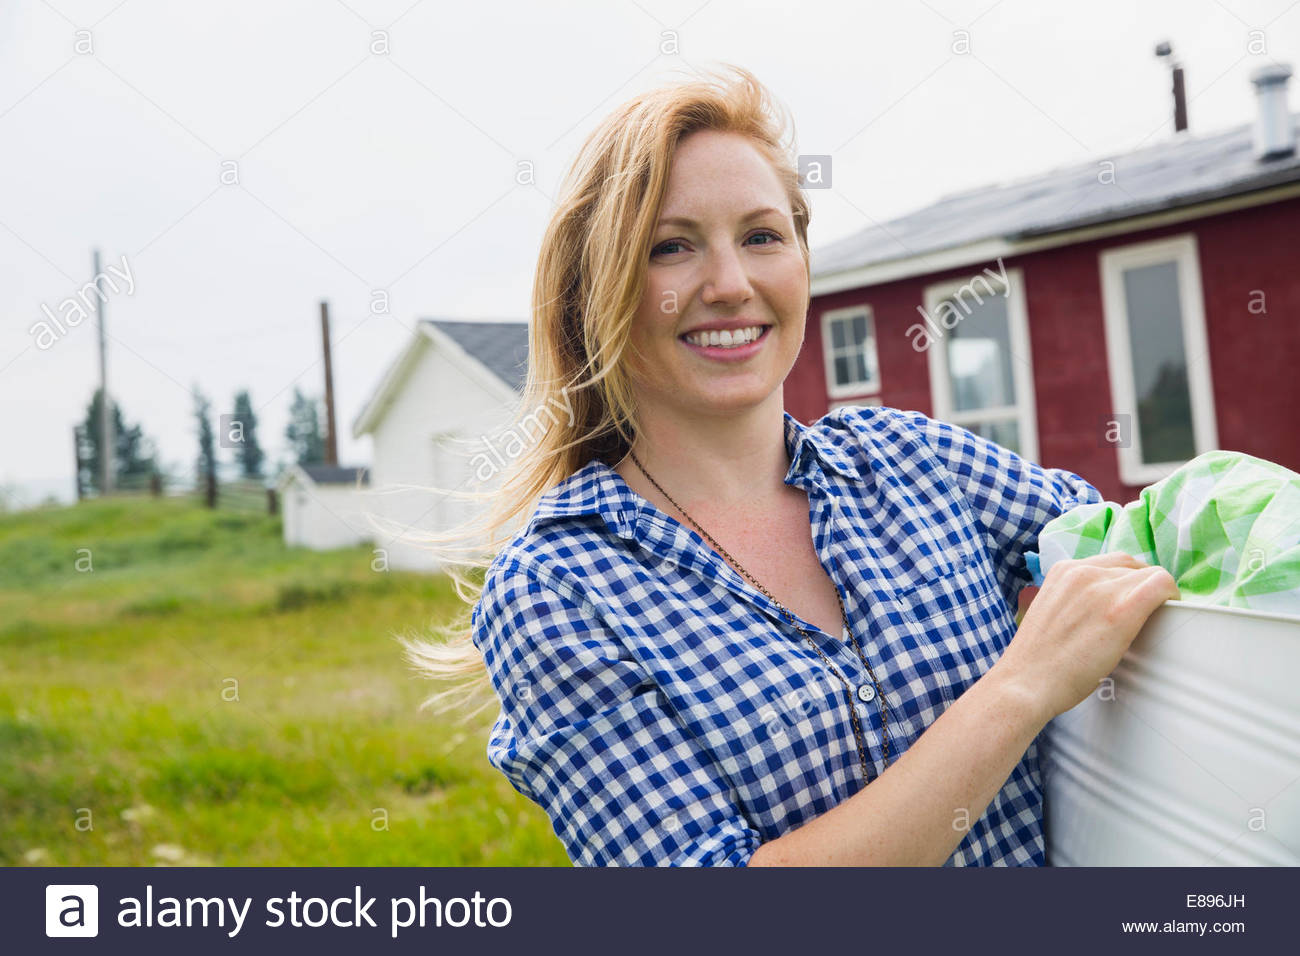 Portrait of smiling woman holding laundry outside house - Stock Image